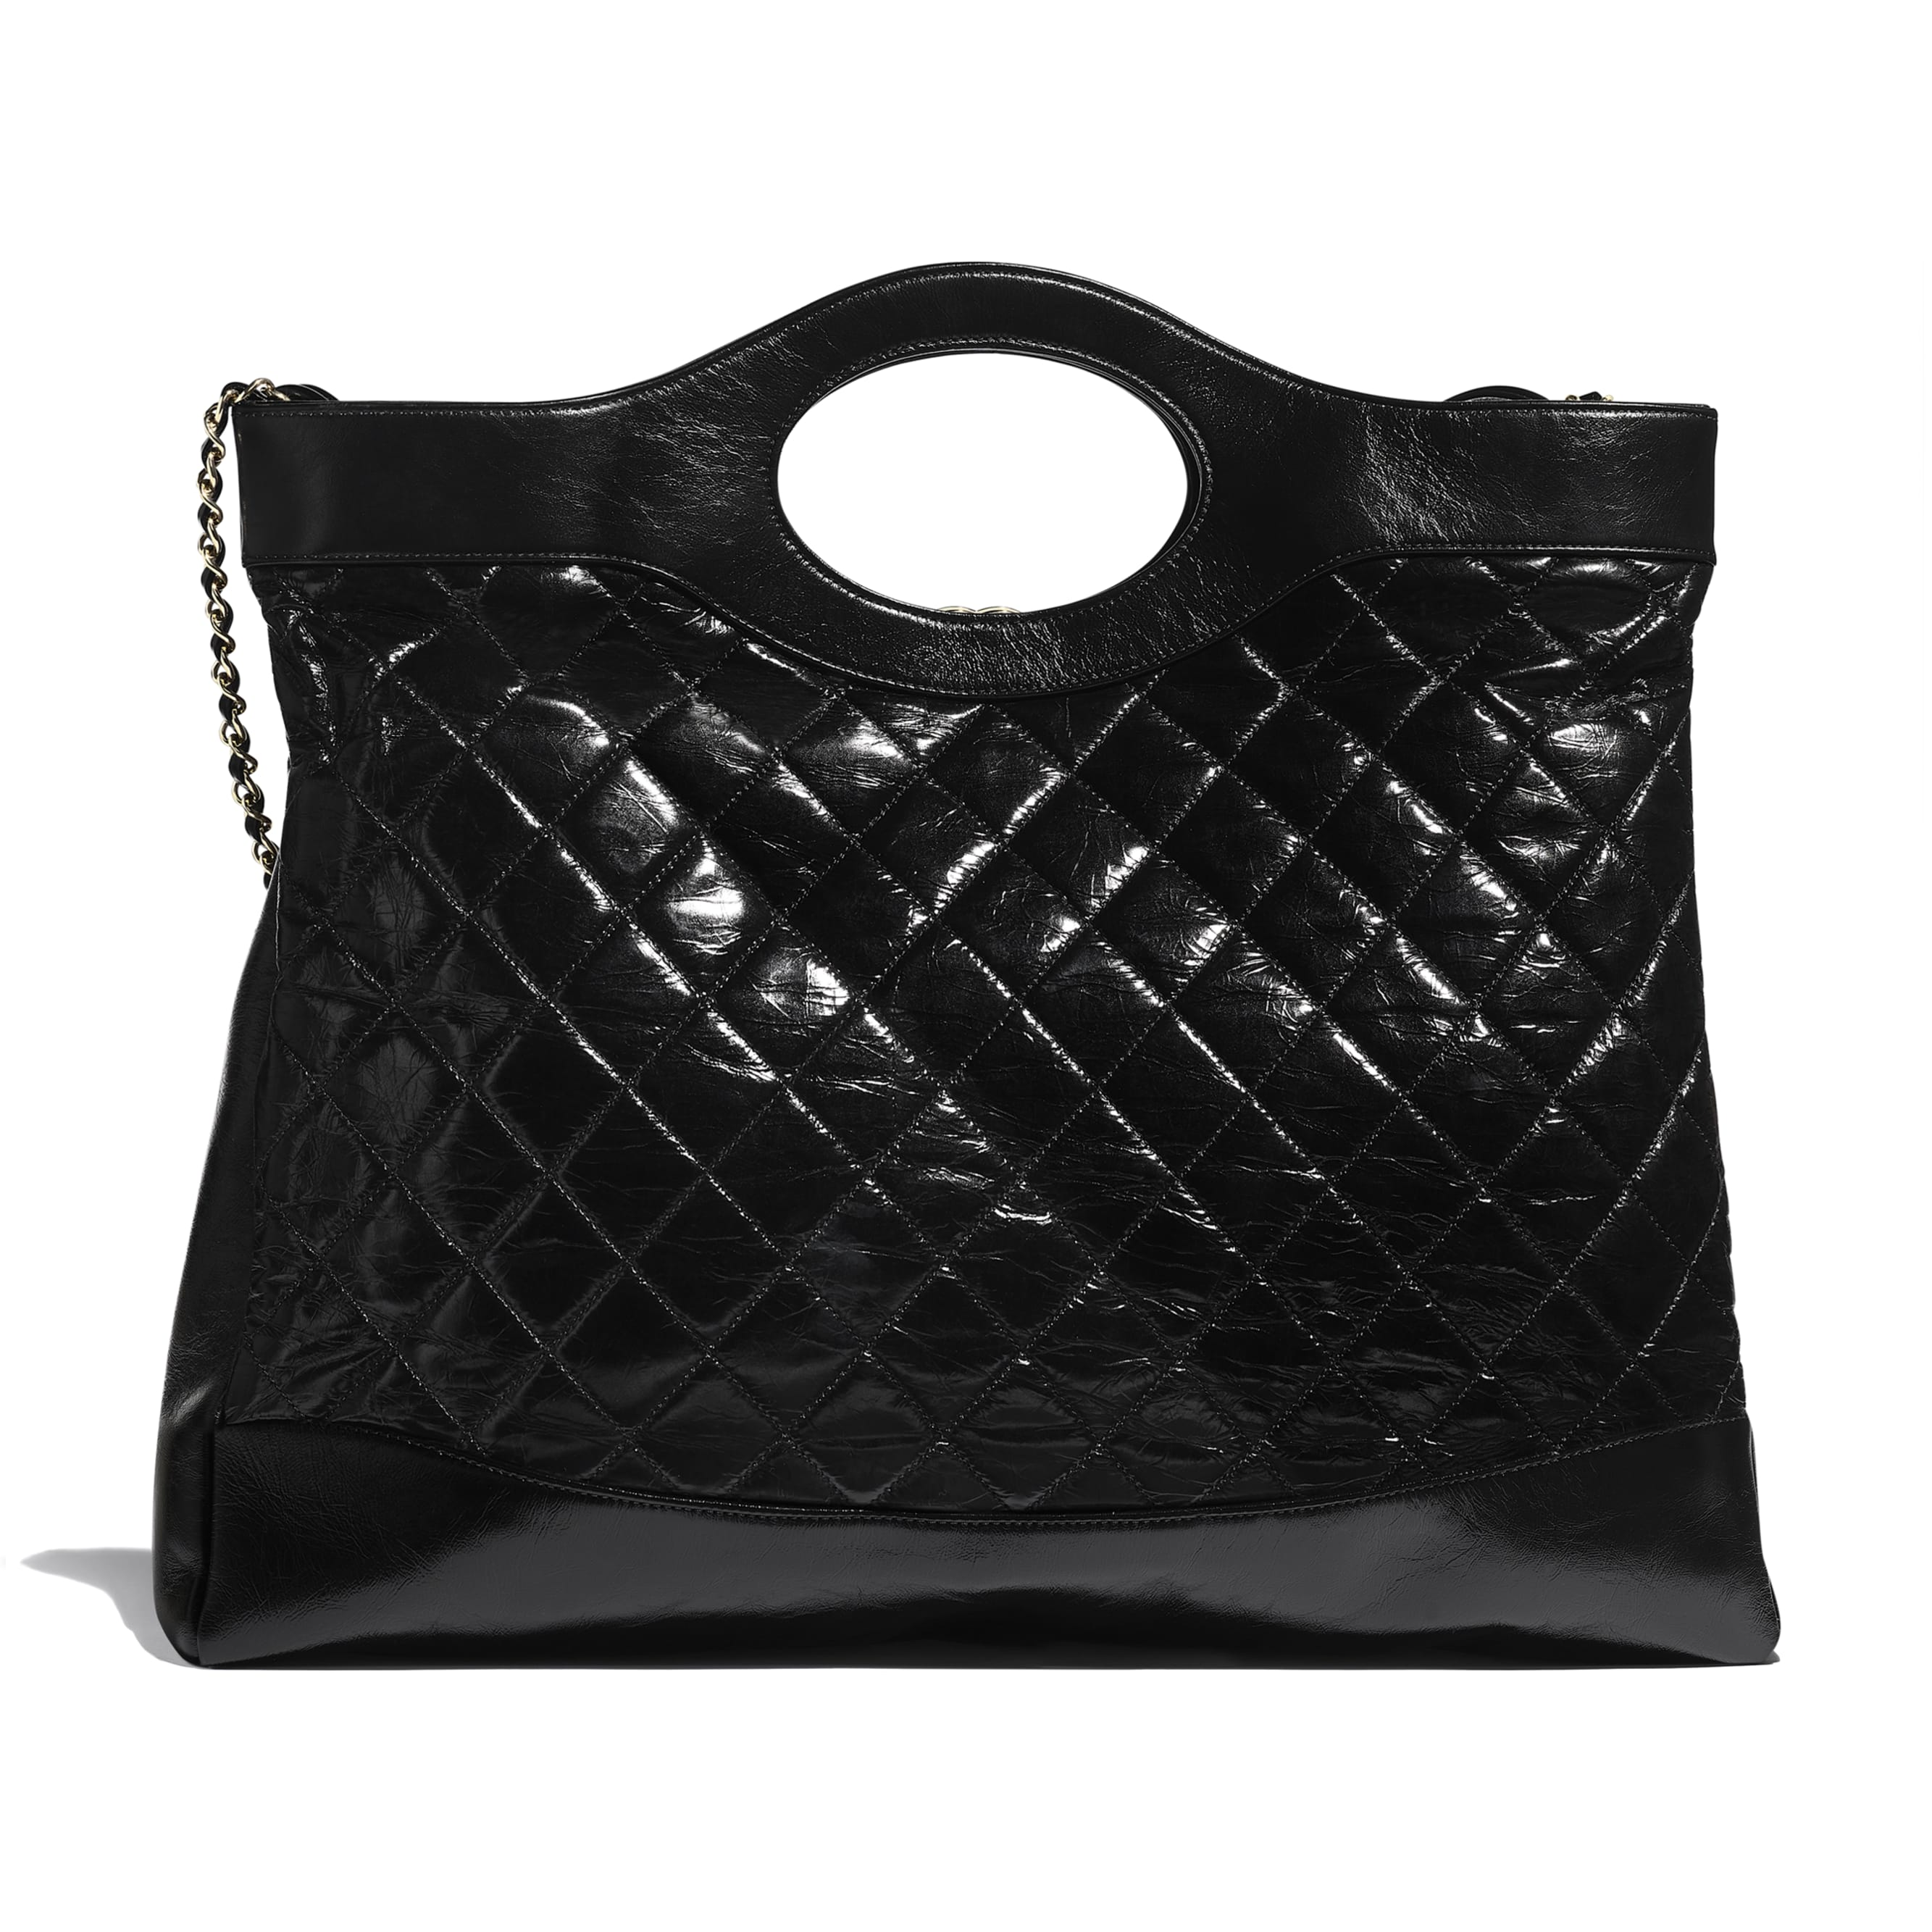 CHANEL 31 Large Shopping Bag - Black - Shiny Crumpled Calfskin & Gold-Tone Metal - Alternative view - see standard sized version